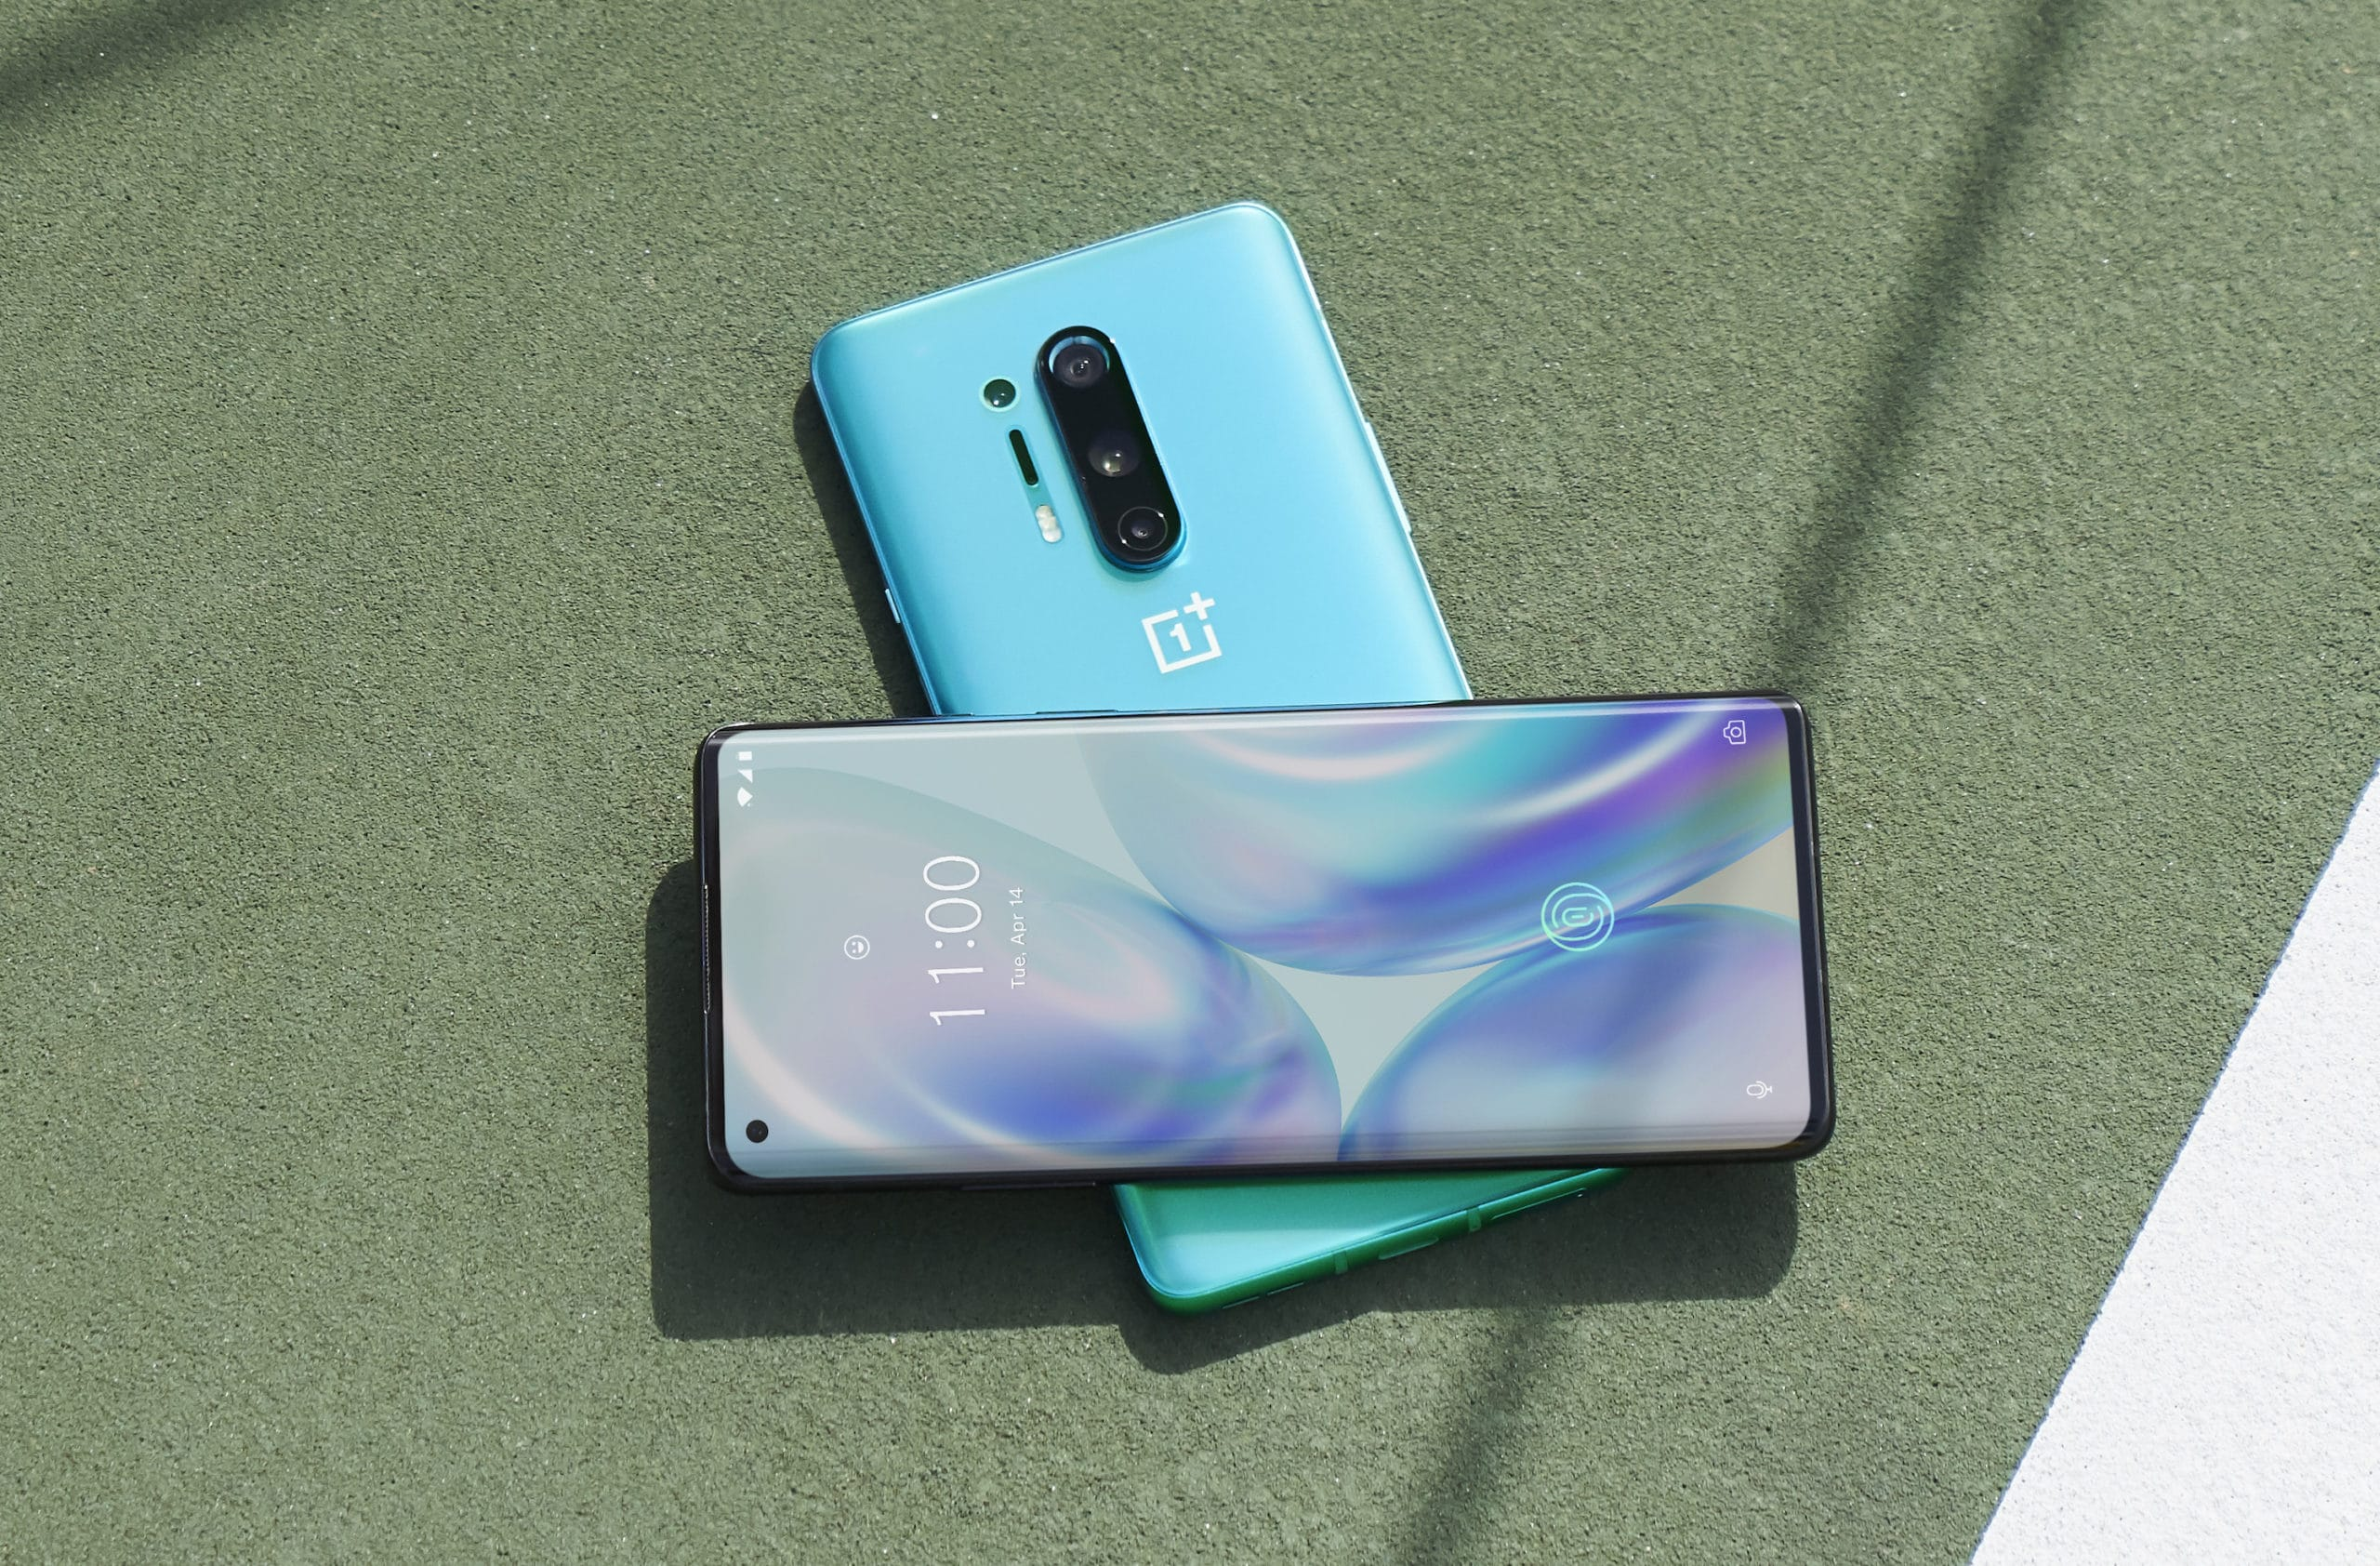 OnePlus 8 Pro in green